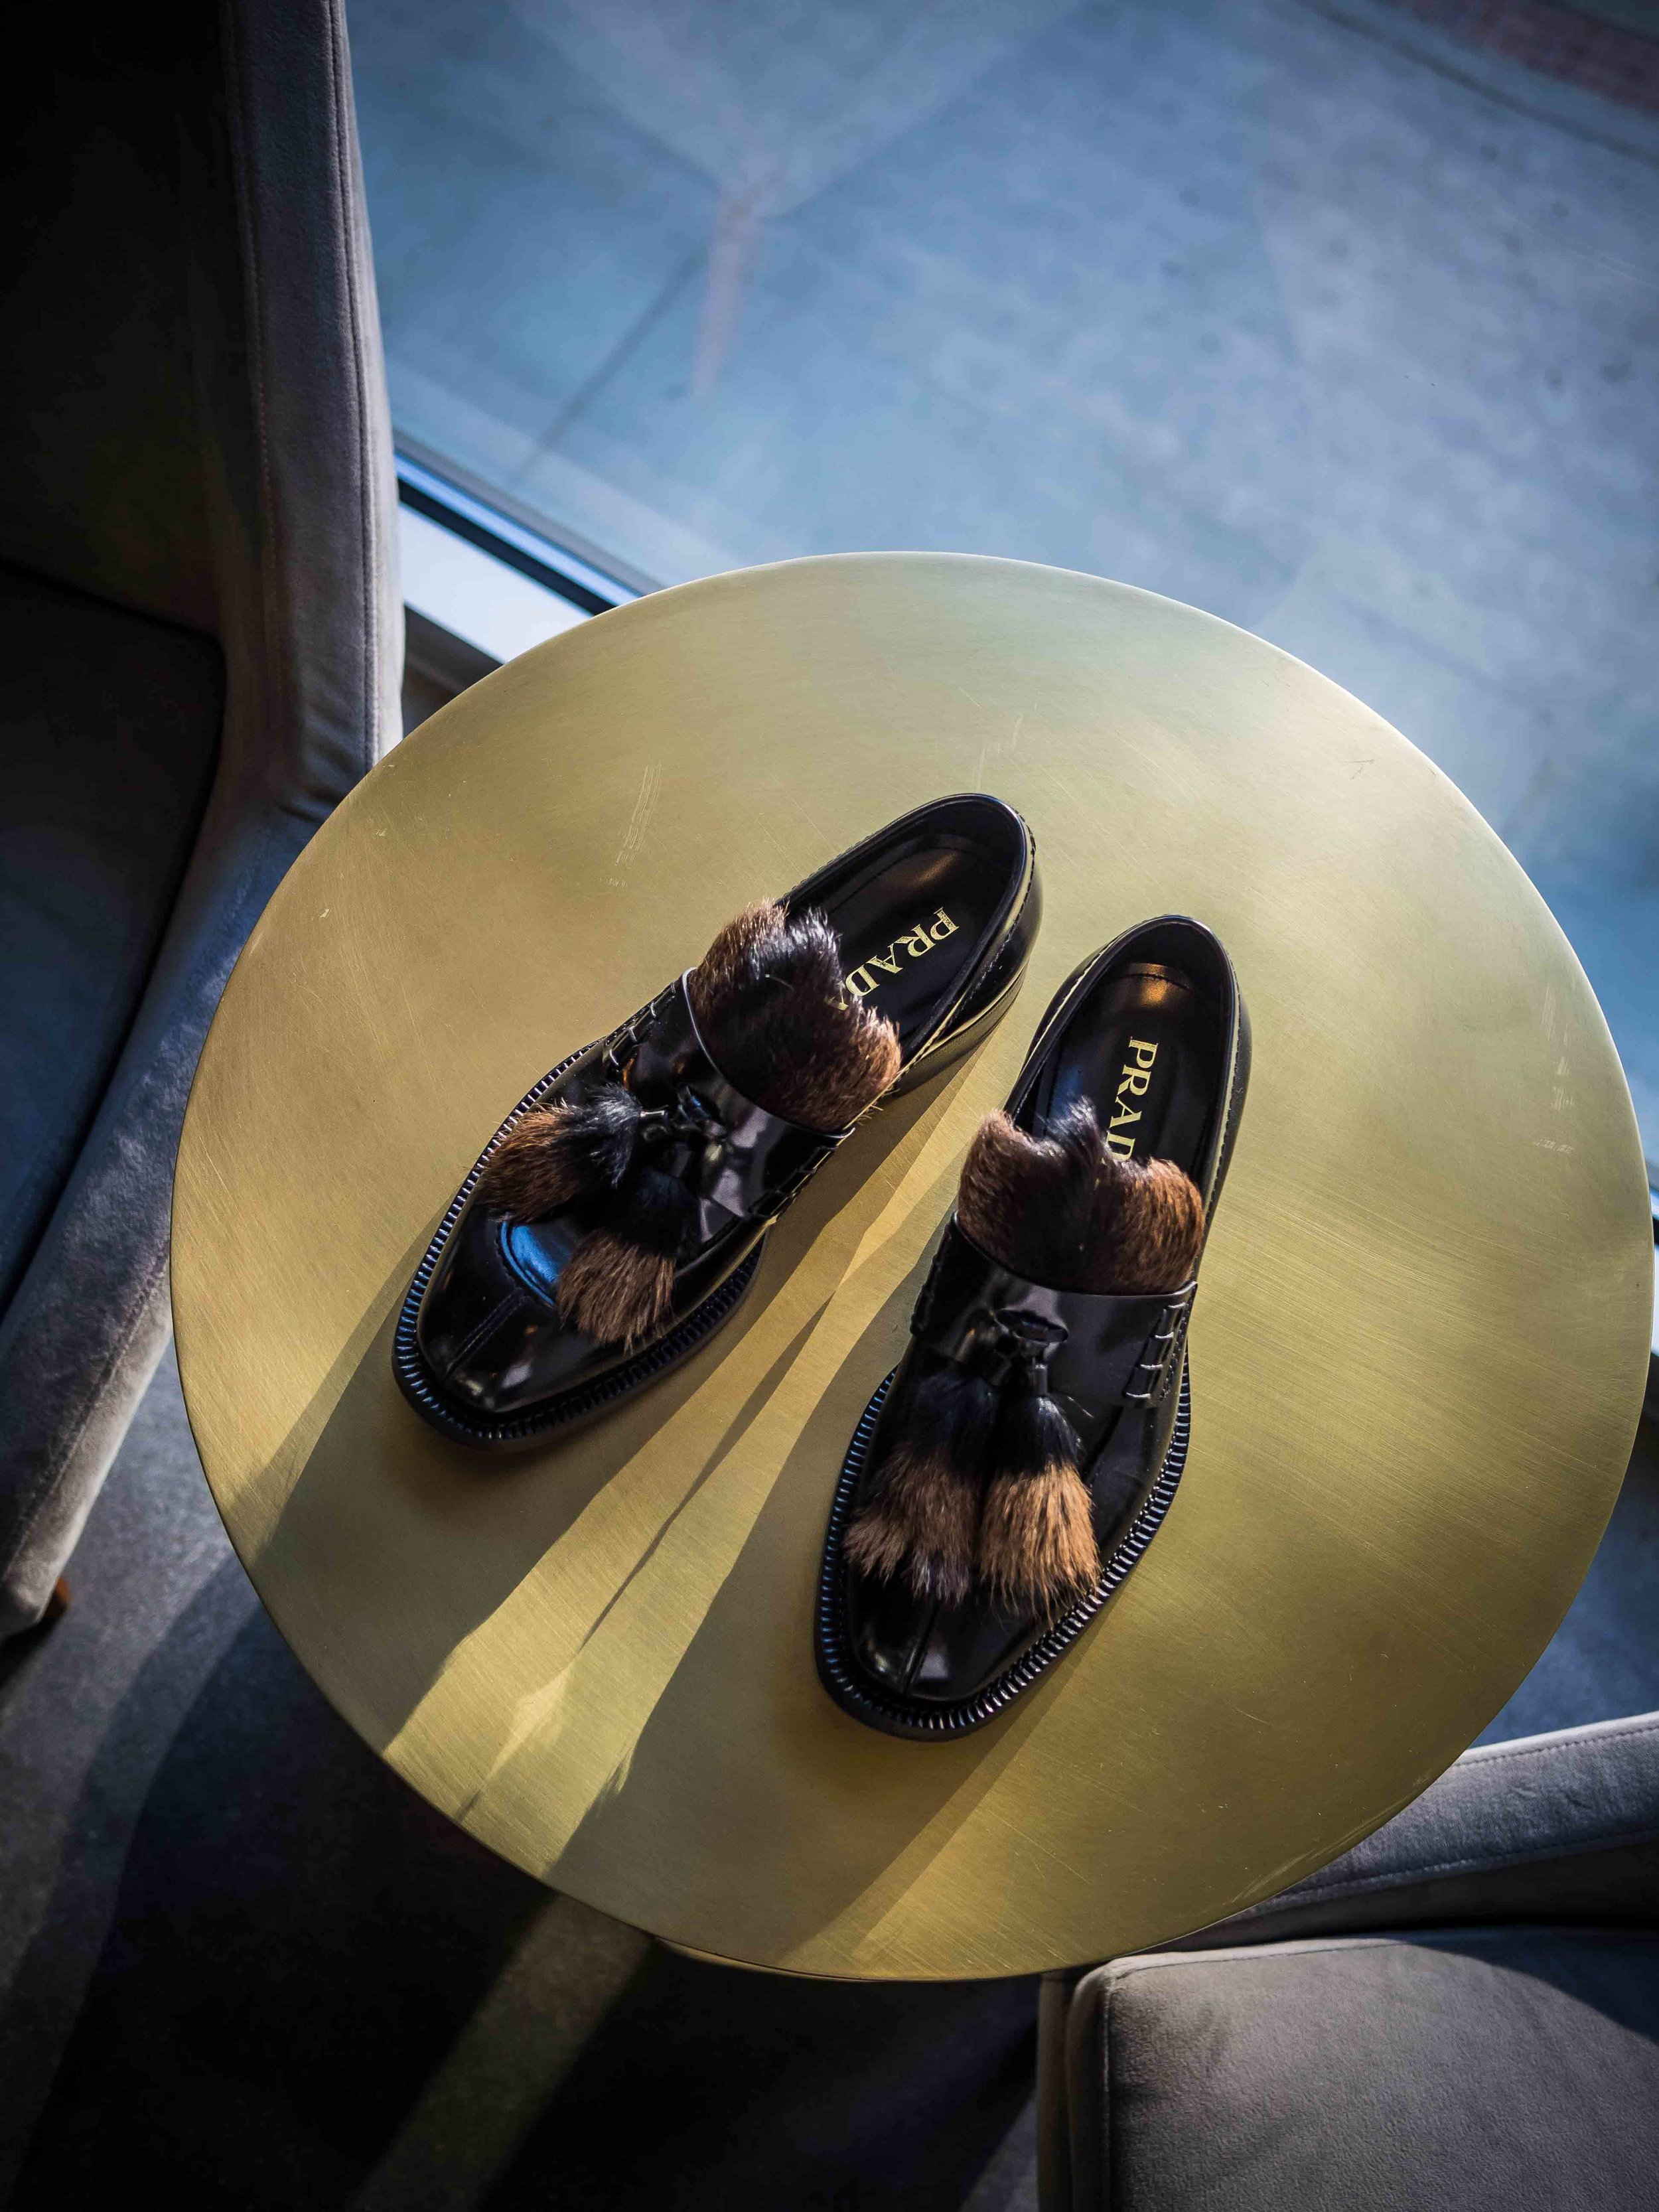 PRADA-FUR-LOAFERS-LUXURY-MENS-SHOES-PRODUCT-PHOTOGRAPHY-BY-TOMMY-LEI-5.jpg